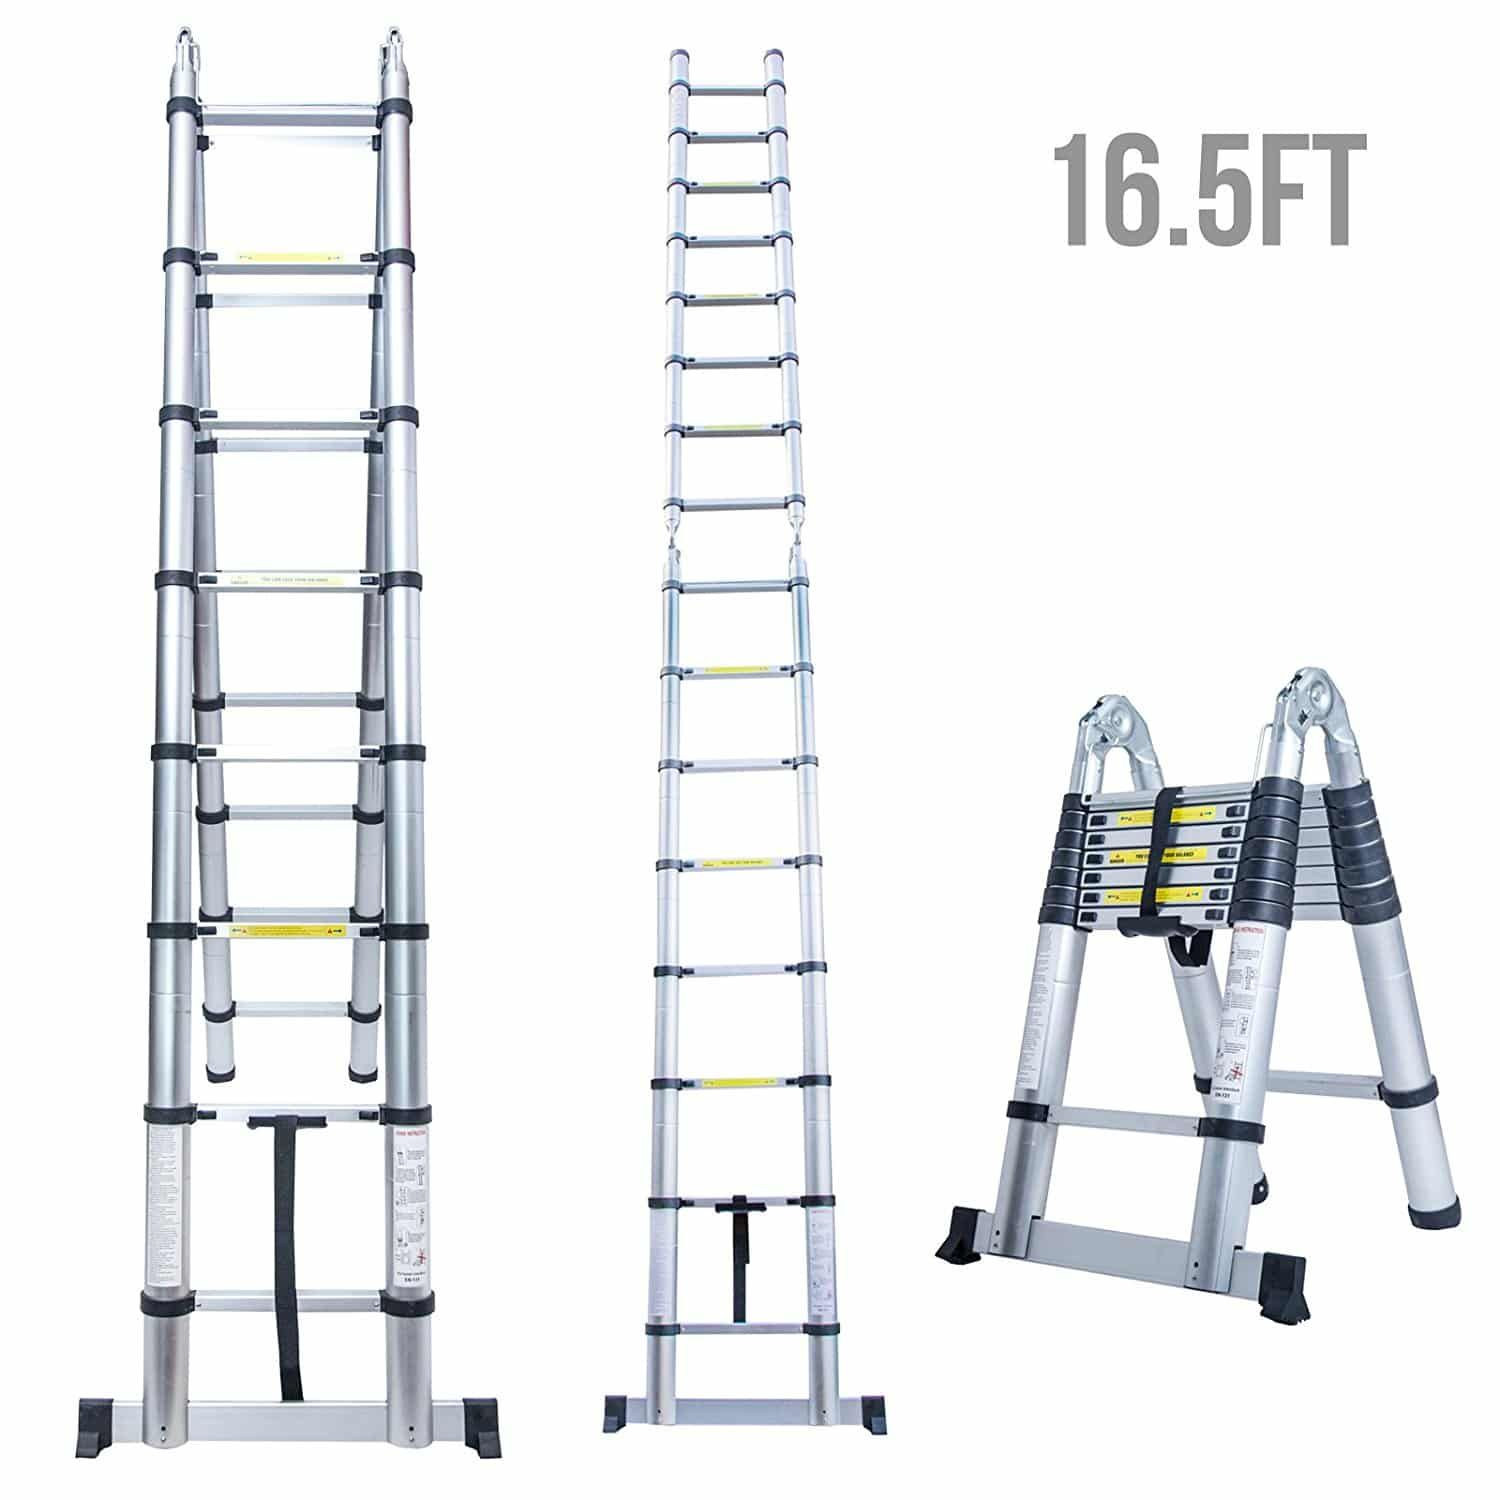 Top 10 Best Aluminum Telescoping Ladders In 2019 Reviews Multi Purpose Ladder Telescopic Ladder Ladder